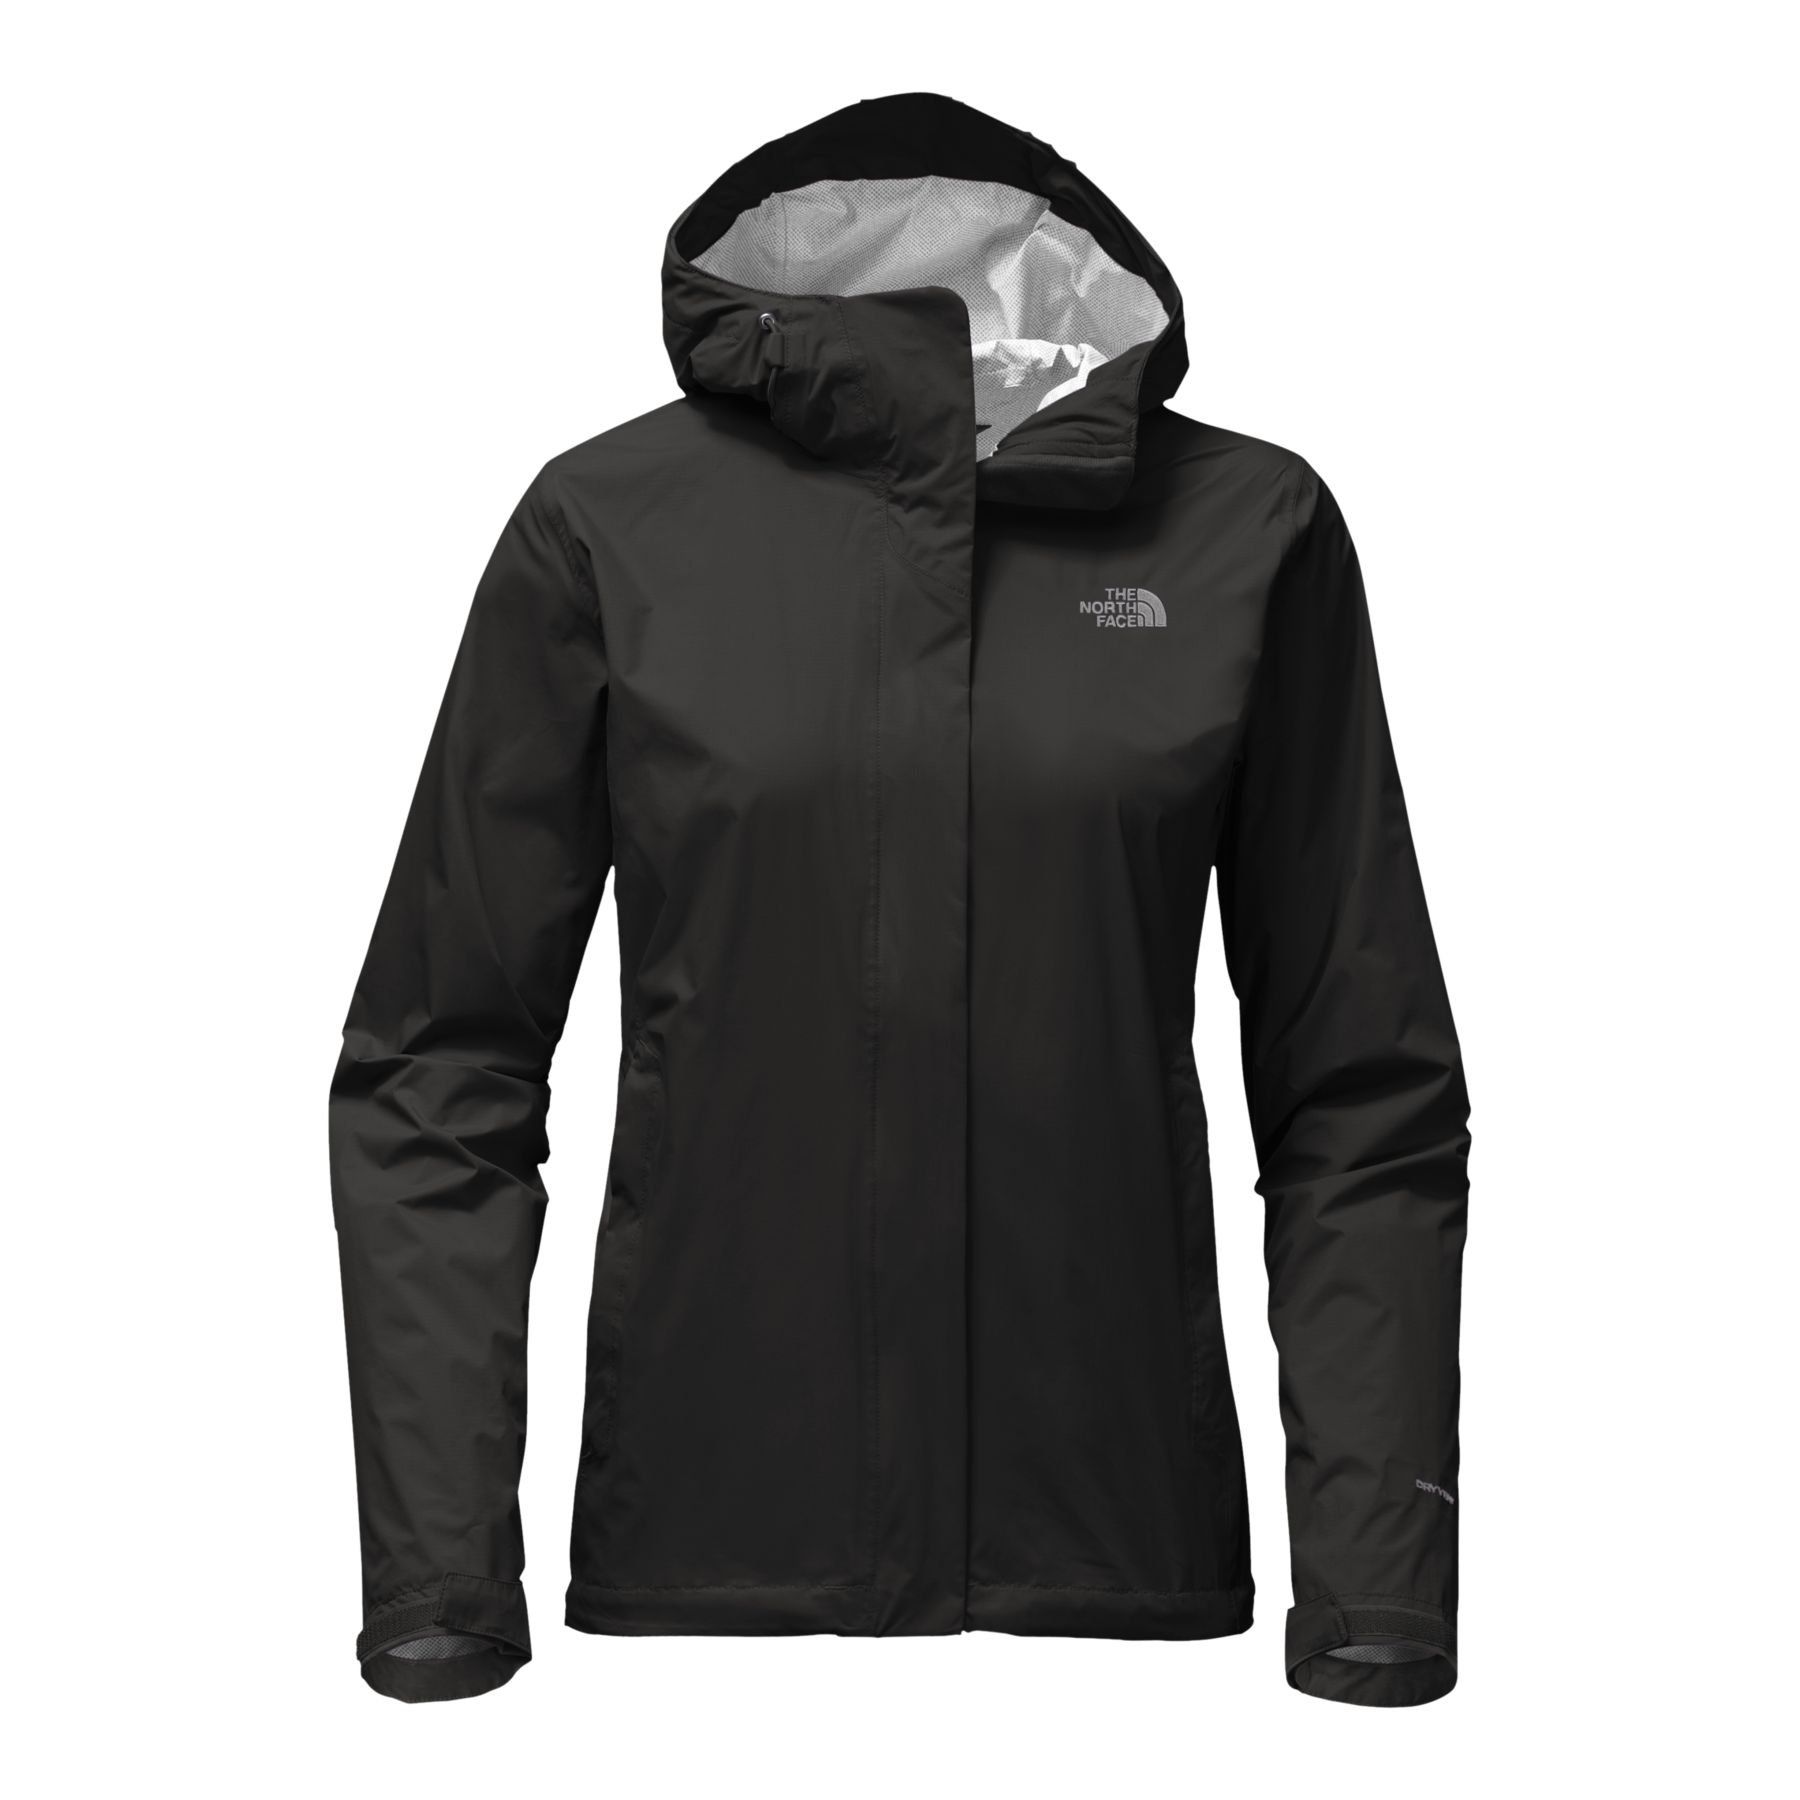 The North Face Women's Venture 2 Jacket - TNF Black - M by The North Face